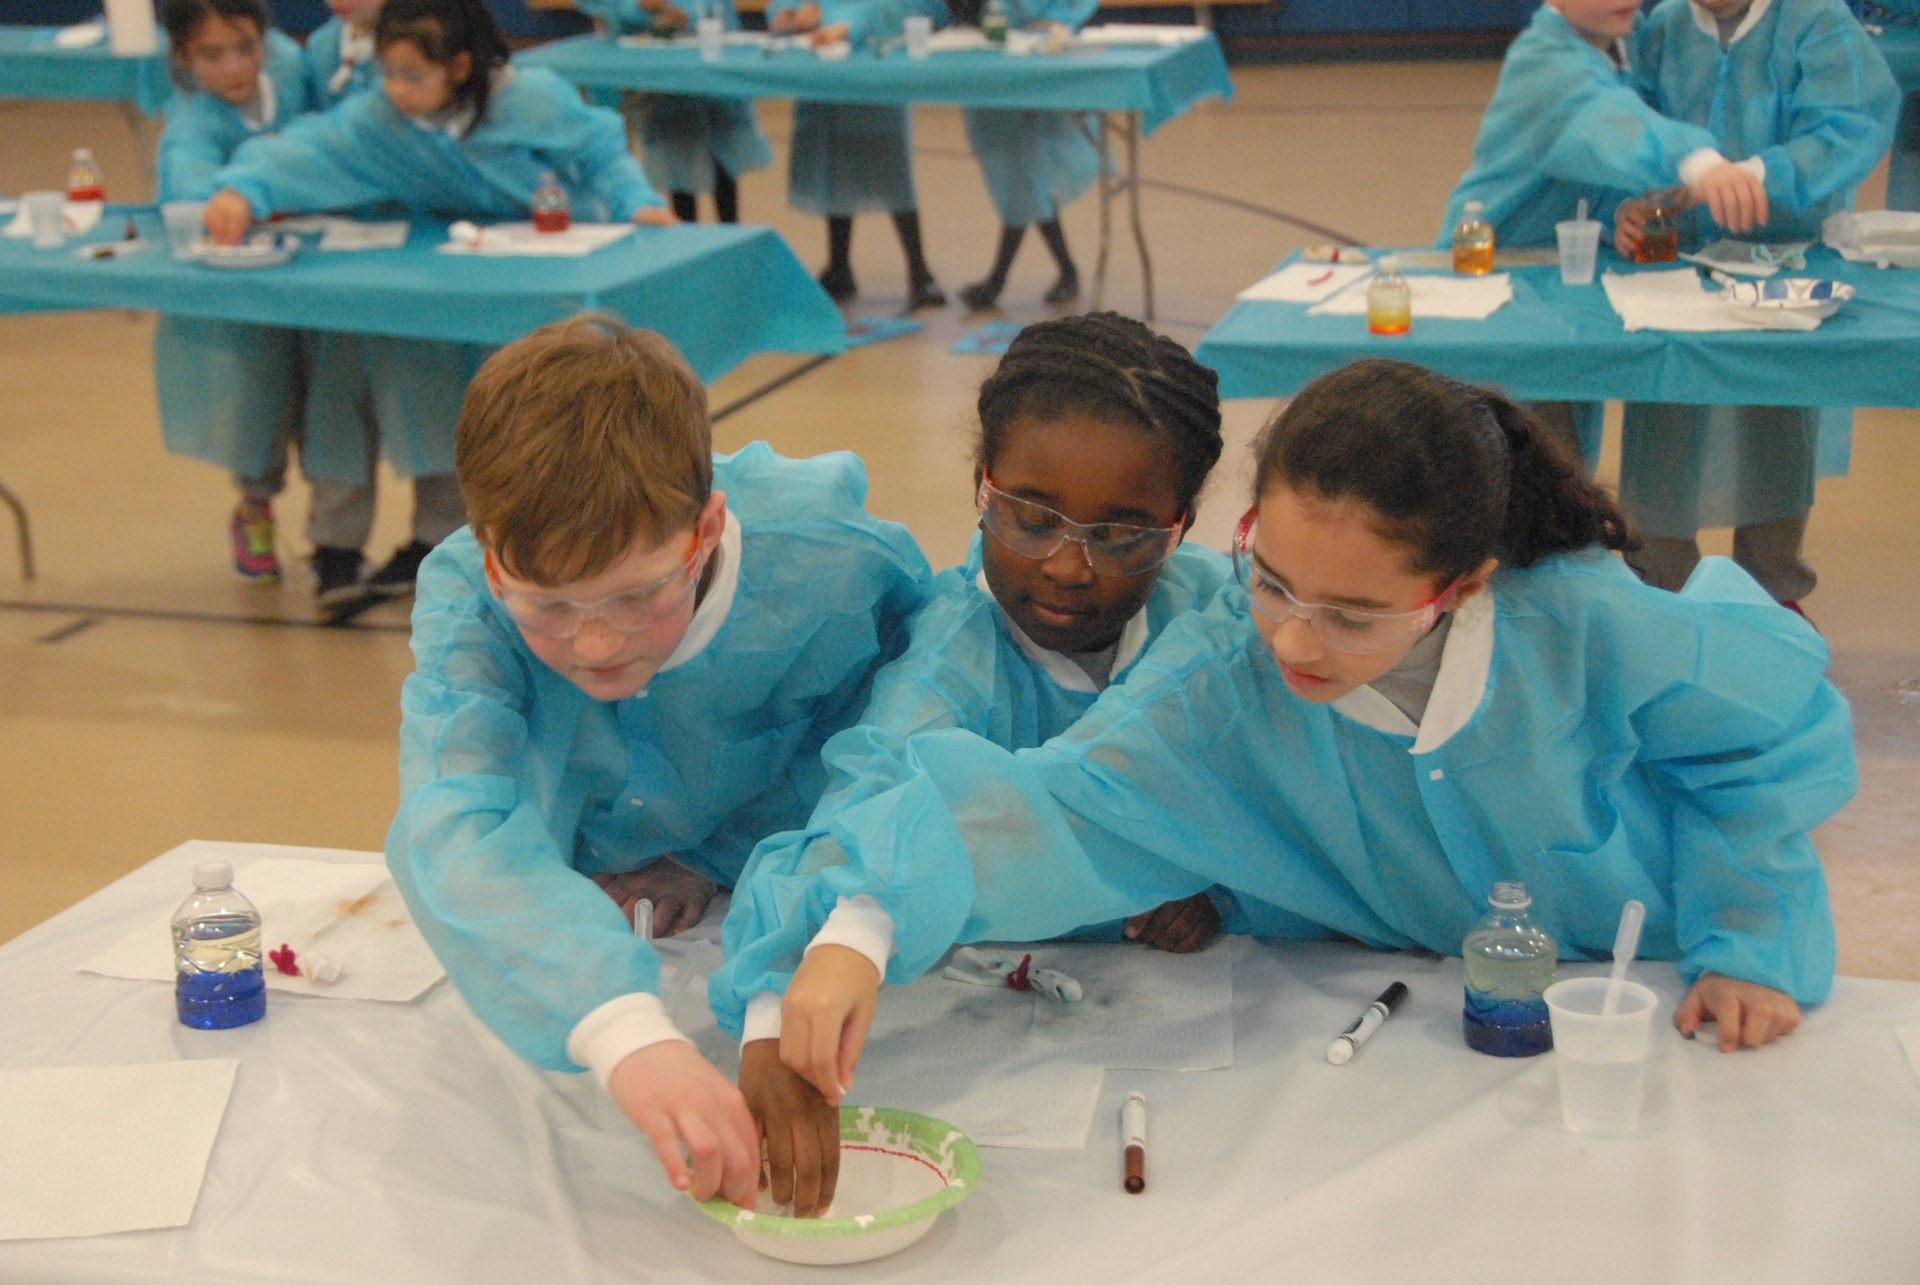 Students perform experiment at STEM day